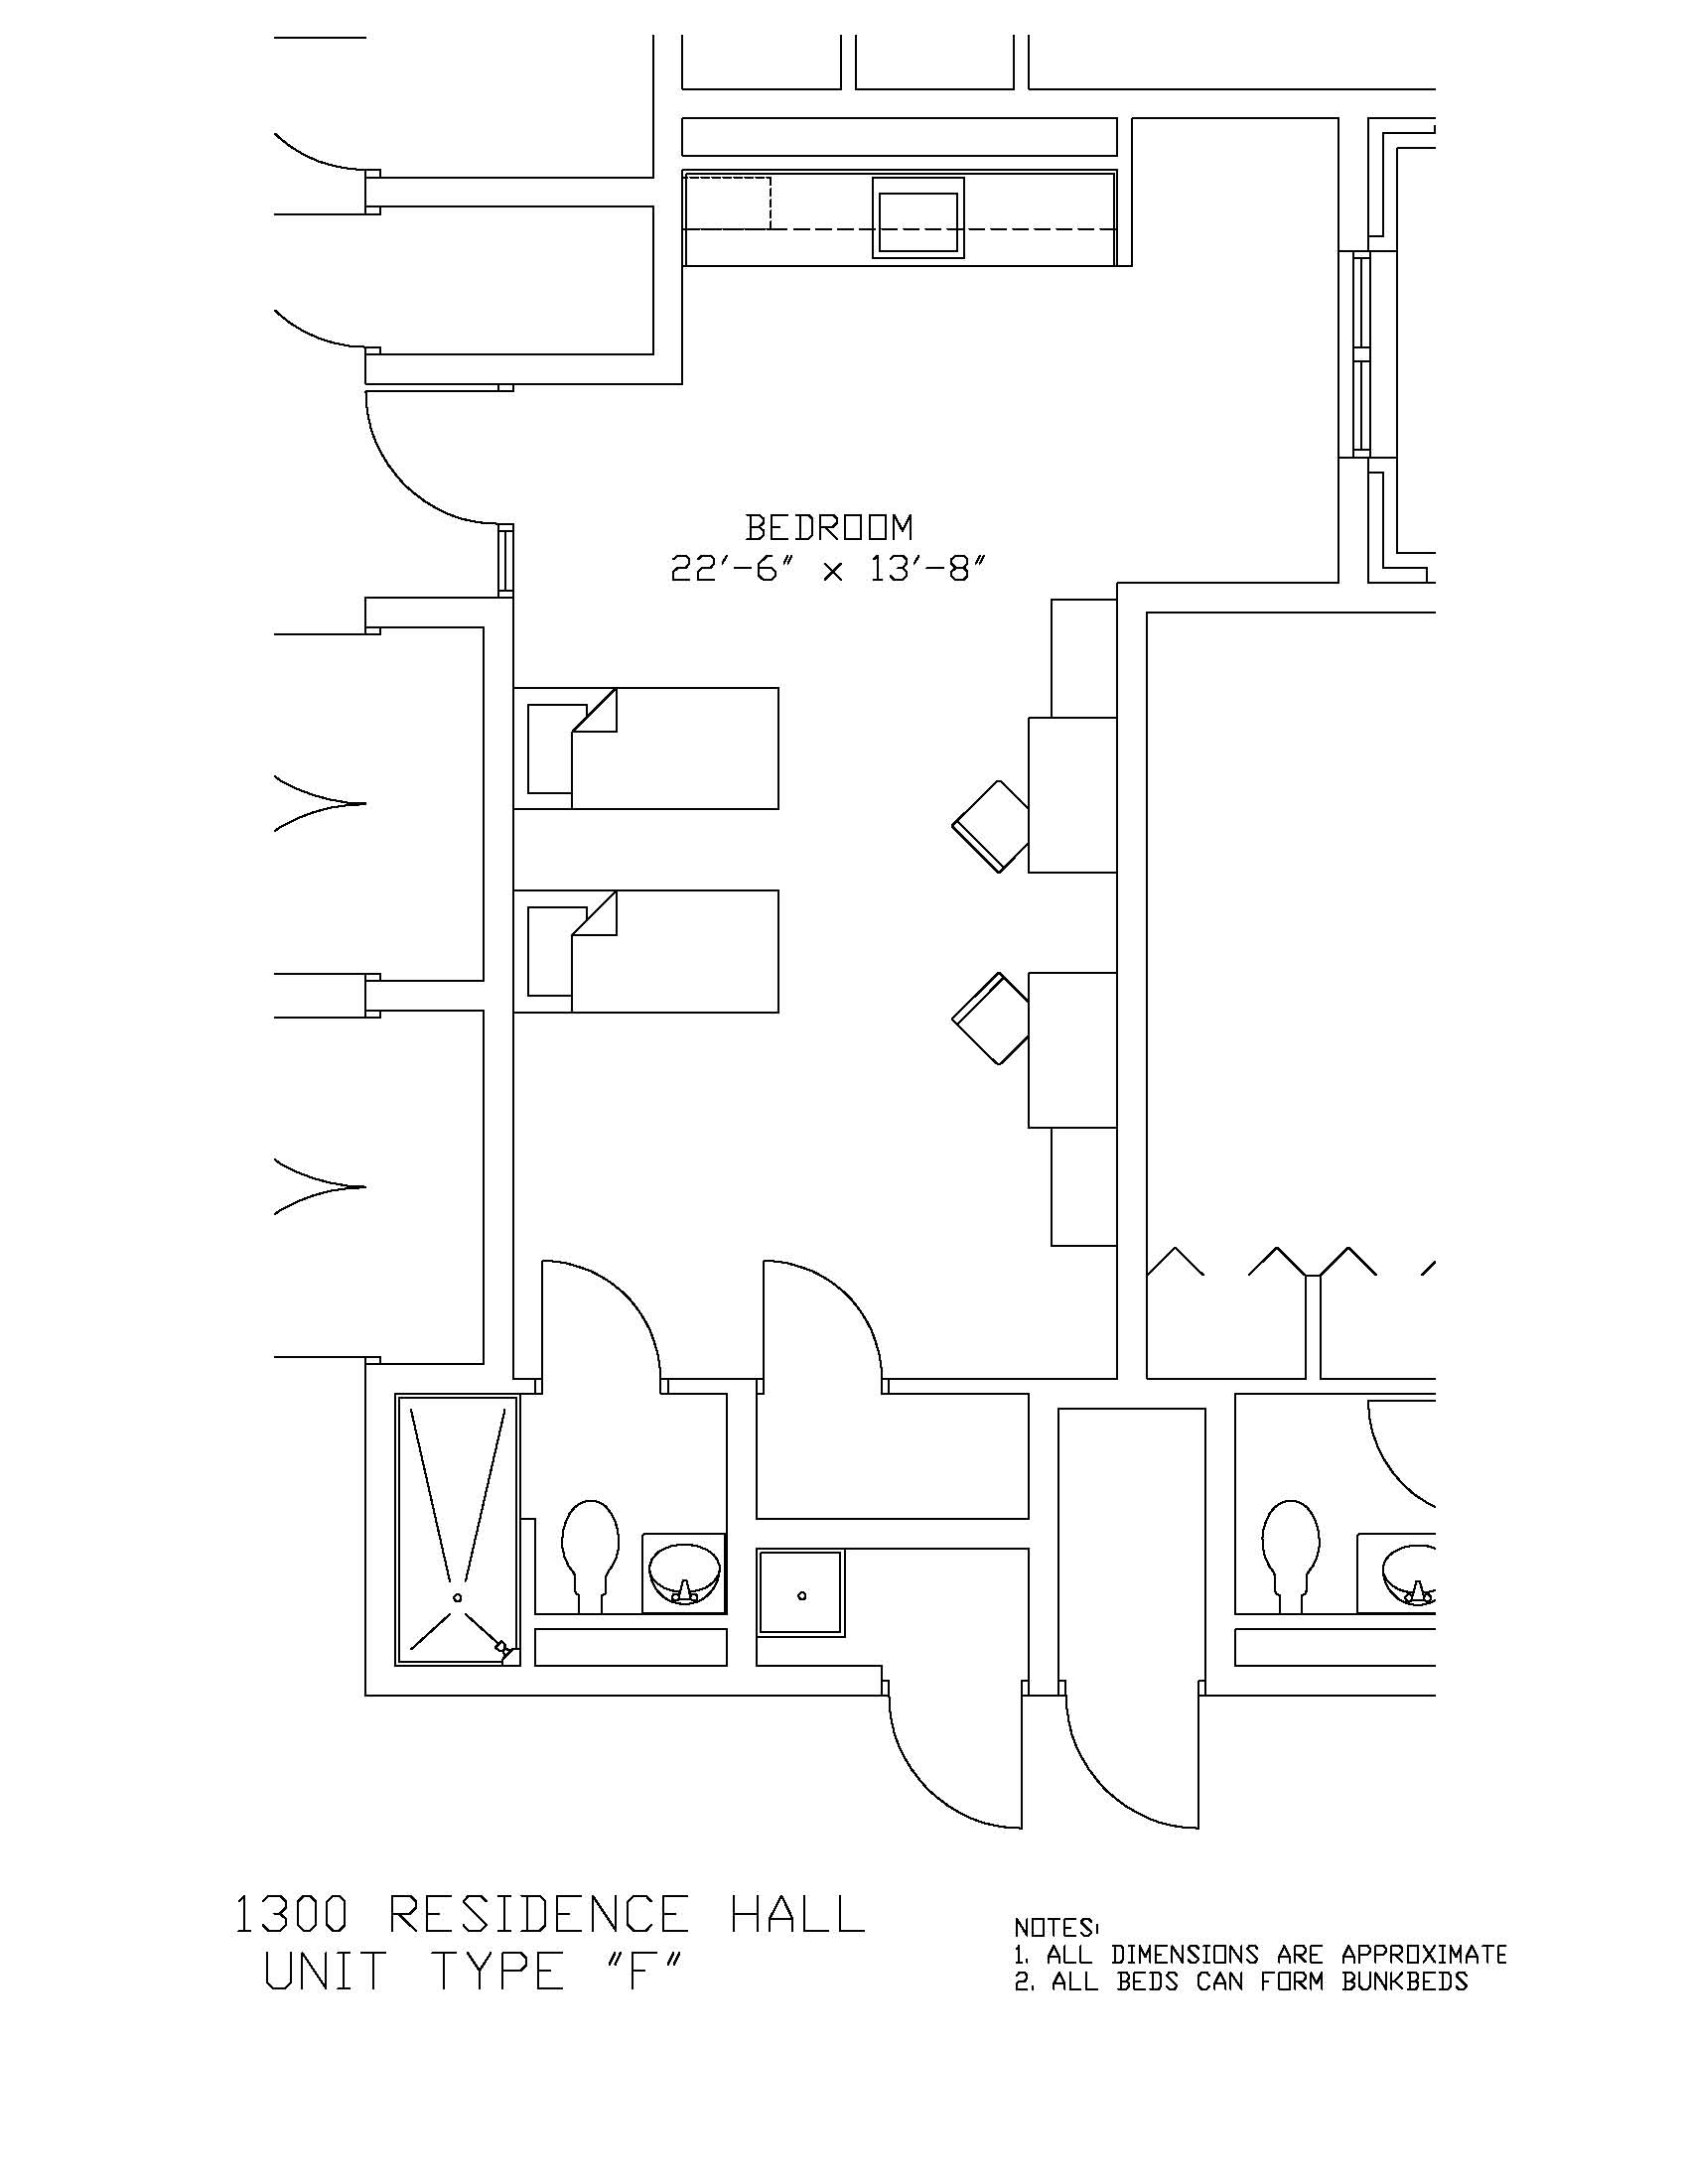 1300 Residence Hall: Type F